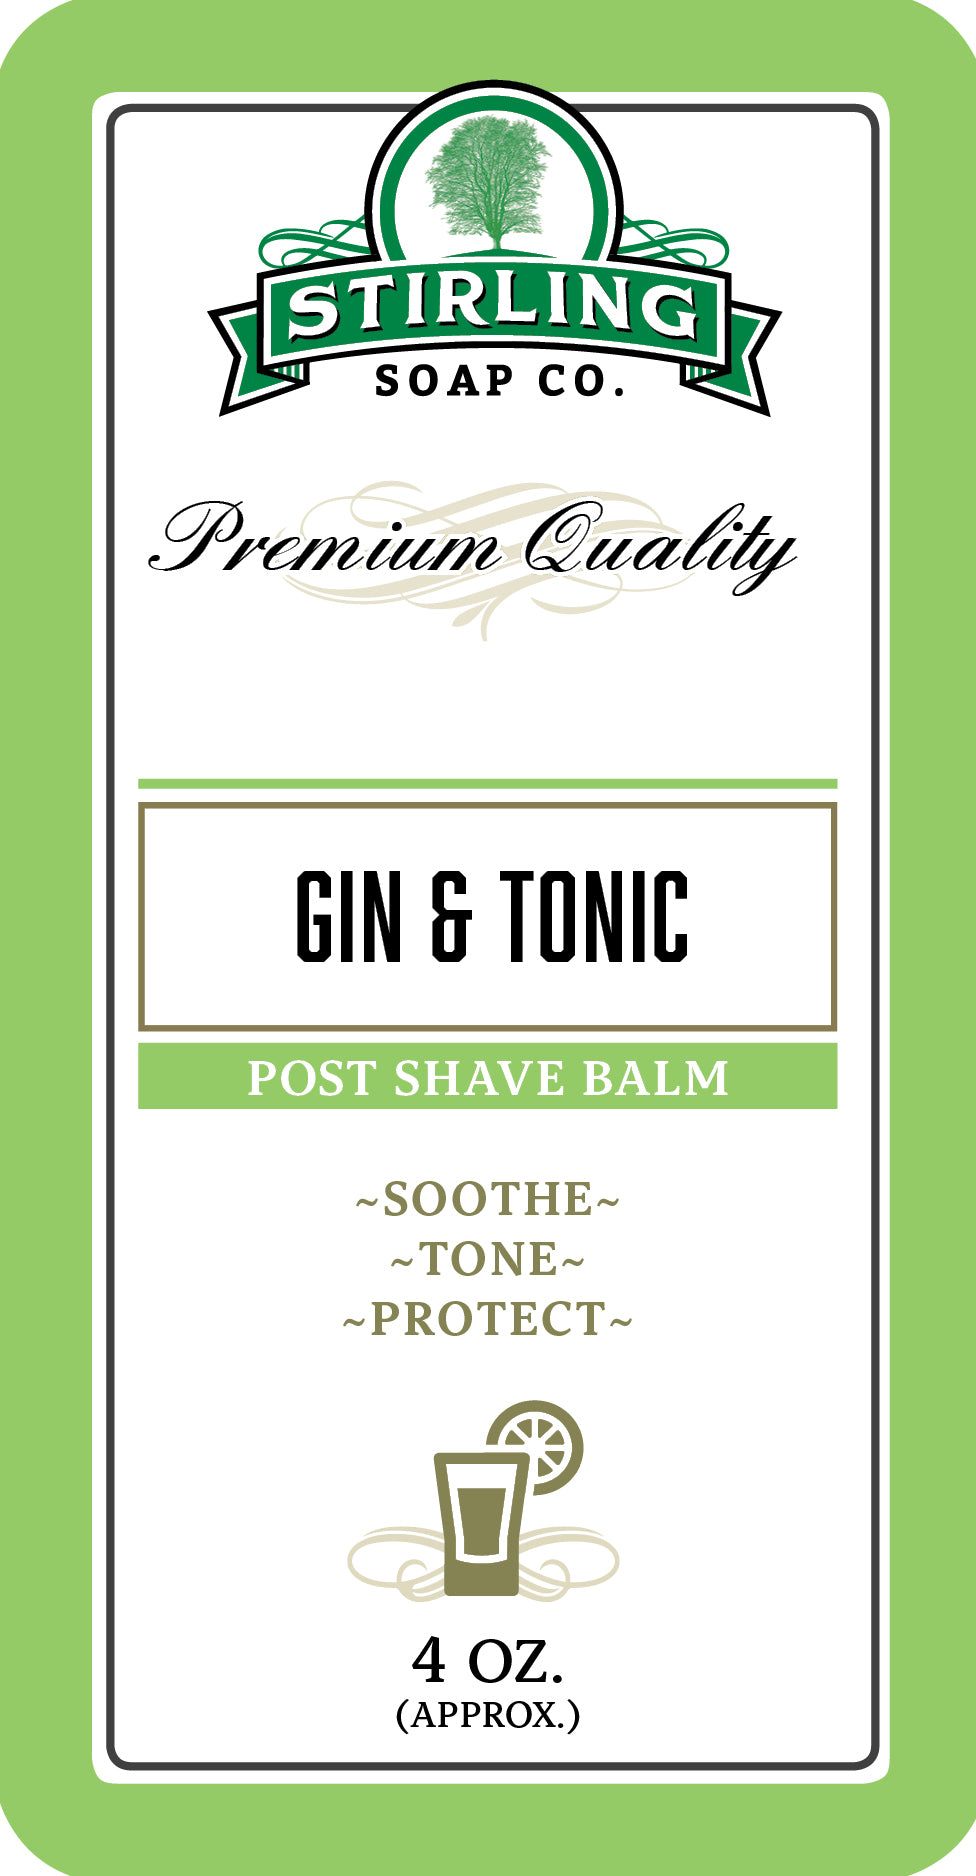 Gin & Tonic - Post-Shave Balm